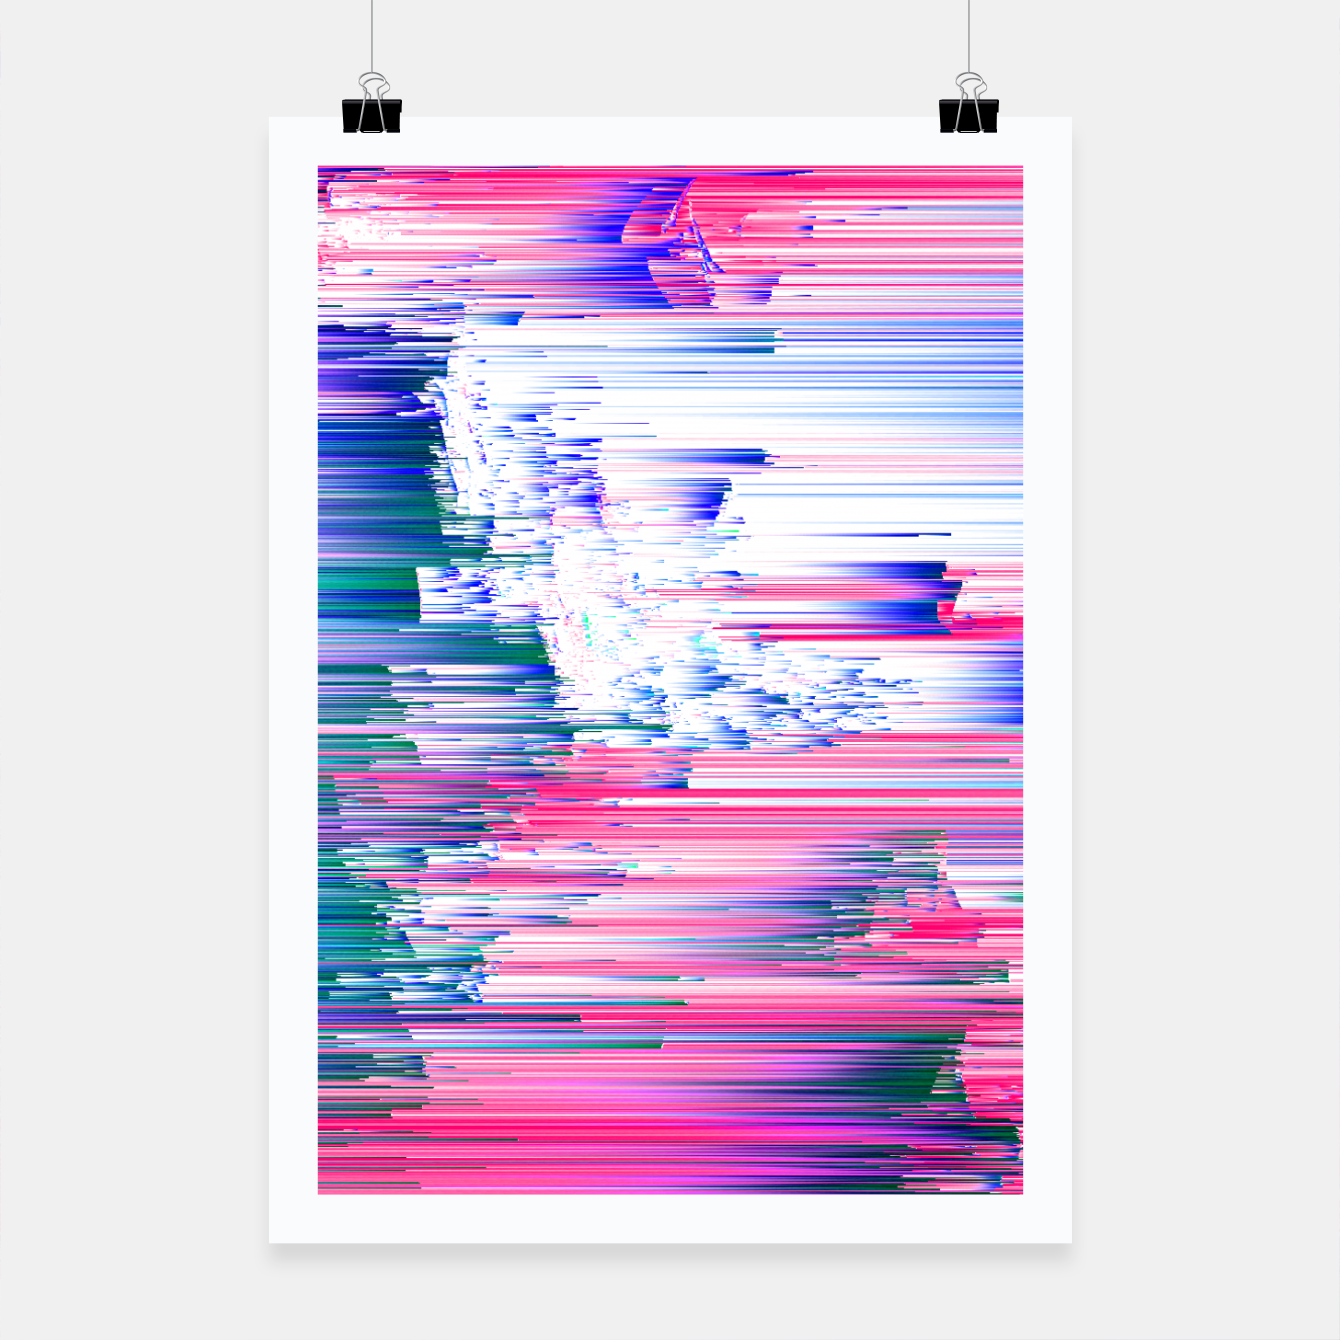 Only 90s Kids - Pastel Glitchy Abstract Pixel Art Poster, Live Heroes